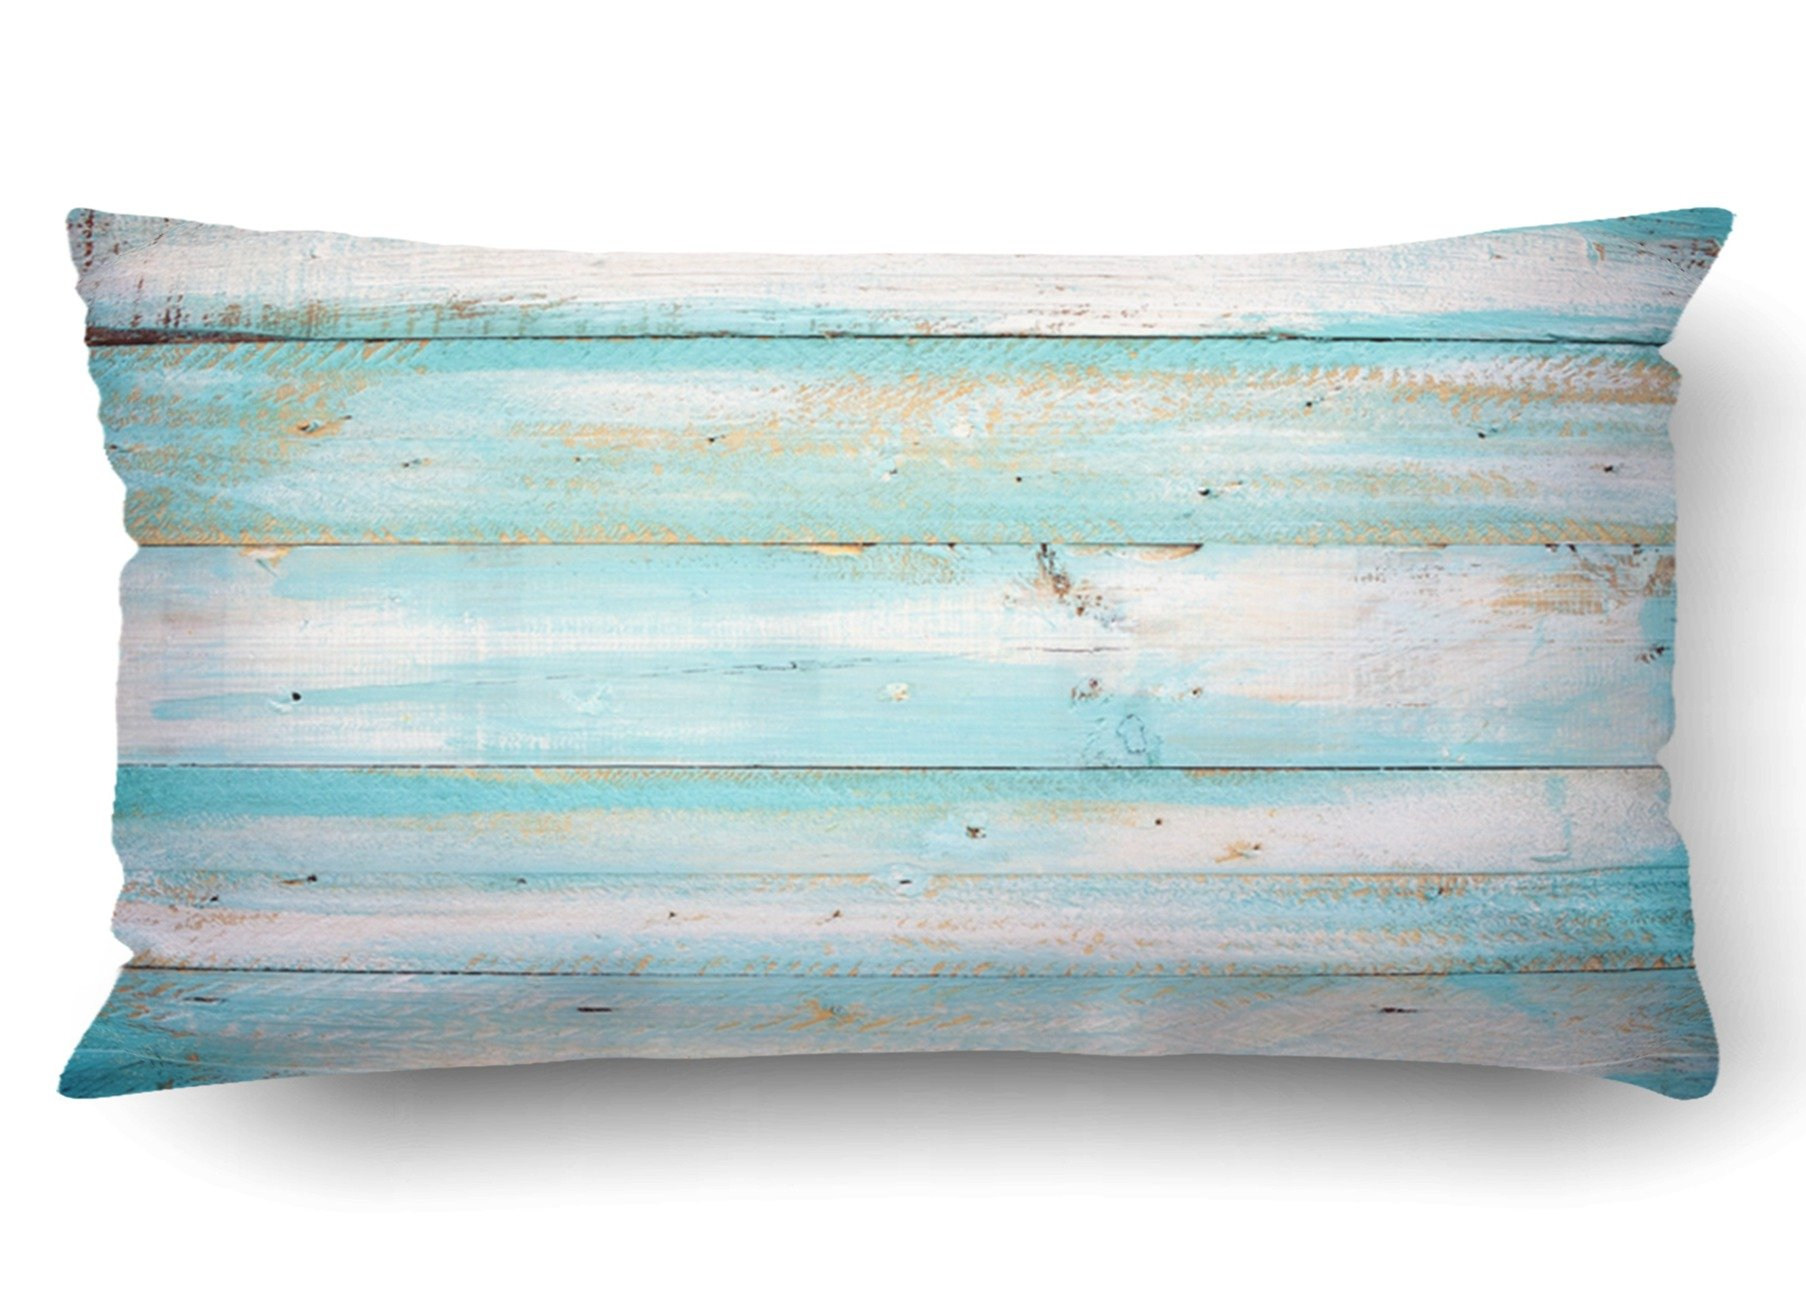 Emvency Pillow Covers Decorative Vintage Beach Wood Old Blue Color Wooden Plank Bulk With Zippered 20x36 King Pillow Case For Home Bed Couch Sofa Car One Sided